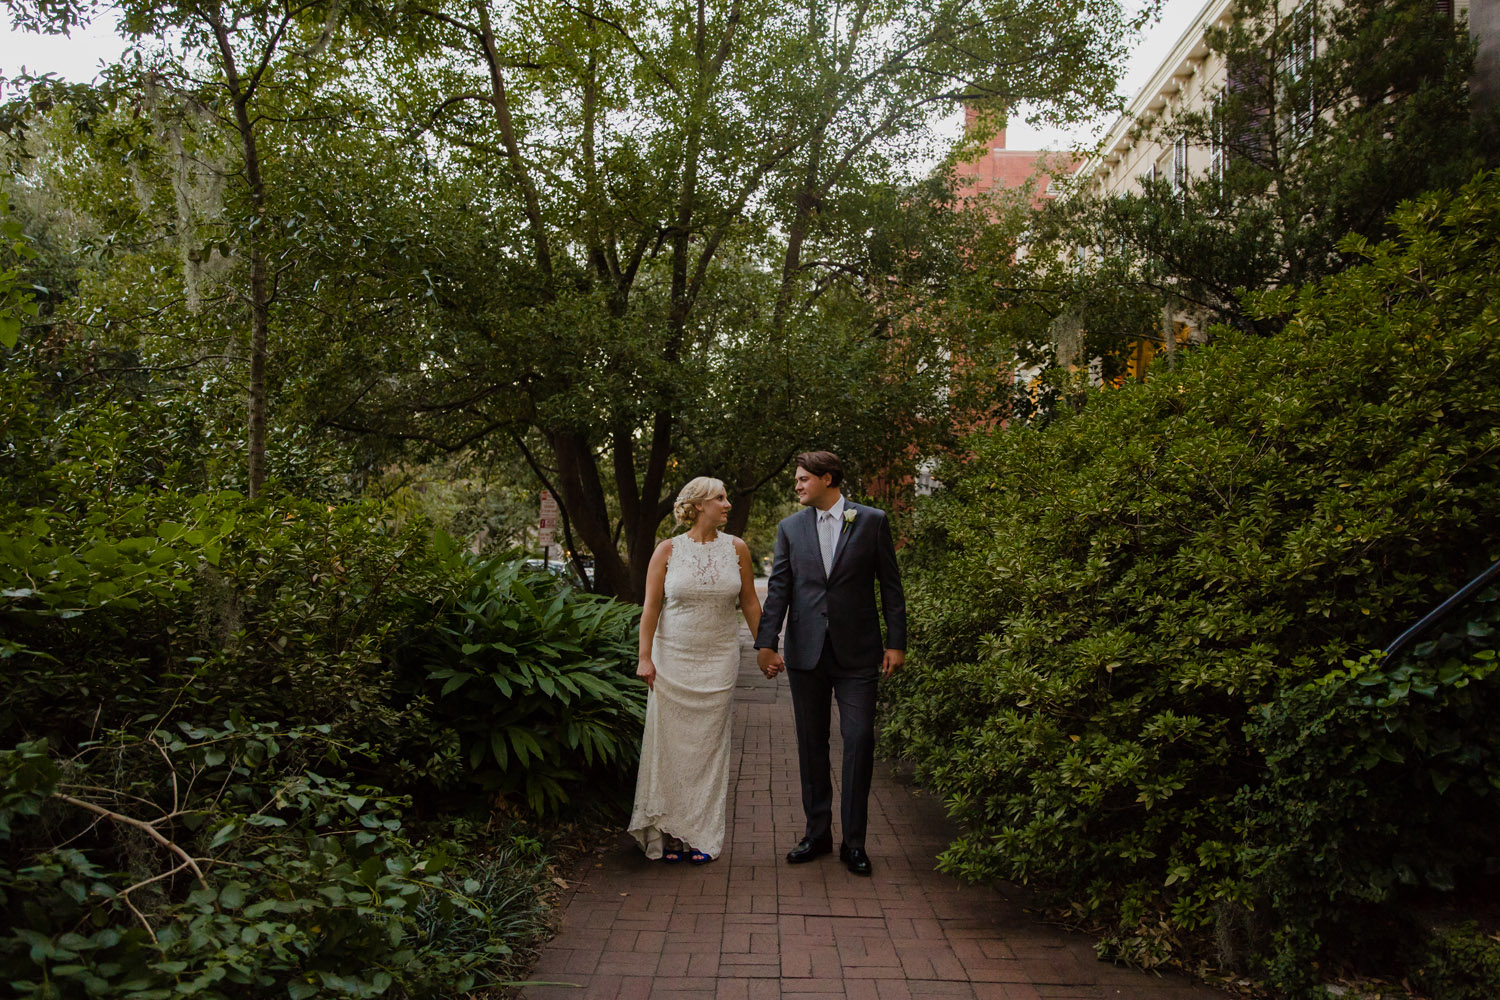 Atlanta Wedding Photographers Savannah Elopement Photographer Destination Photography_1056.jpg